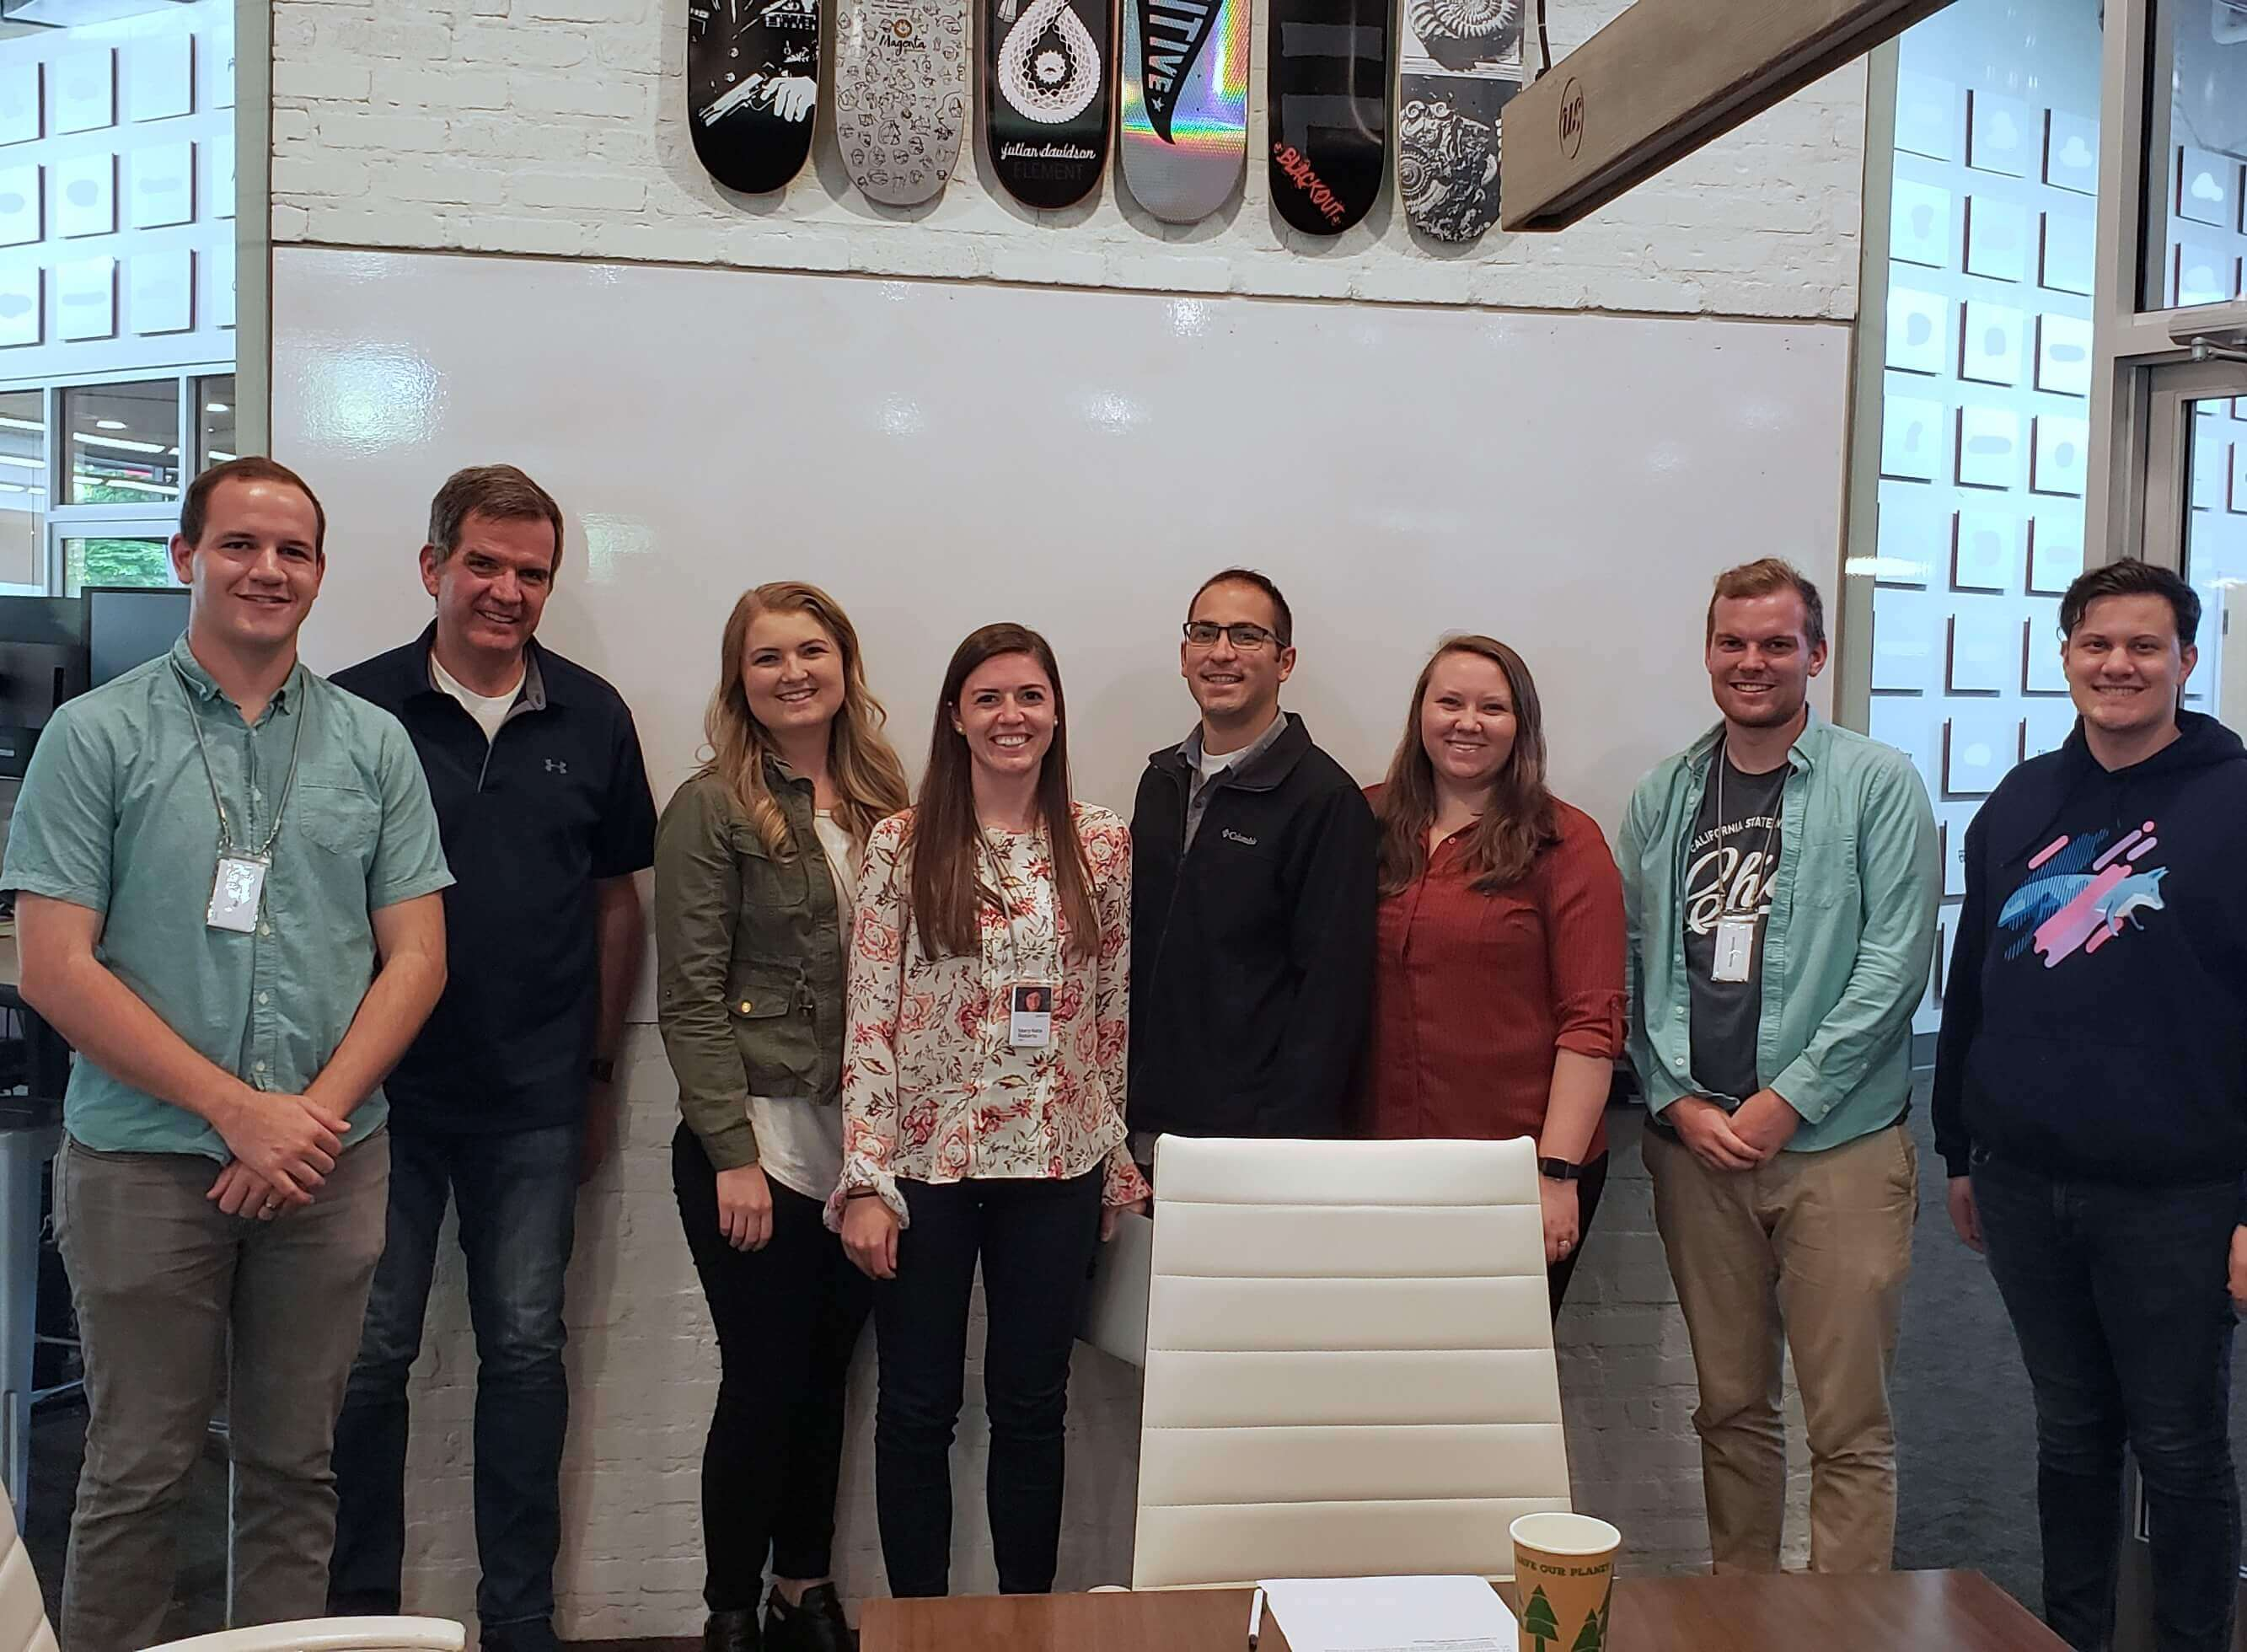 Welcome to Qualtrics! Introducing the class of May 28, 2019